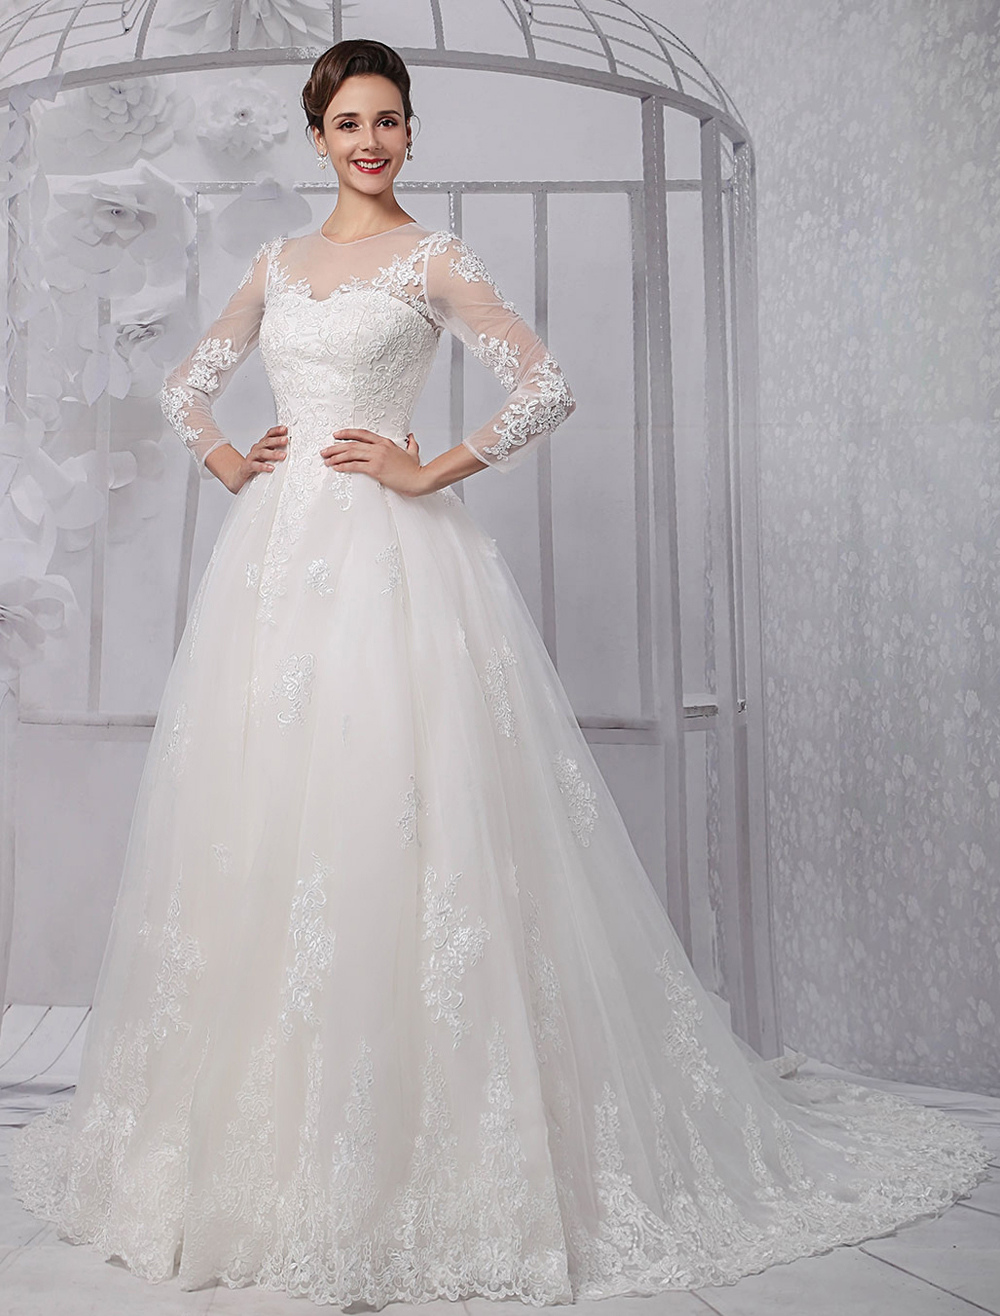 Long sleeves illusion neck line lace bridal wedding gown for Long veil wedding dresses